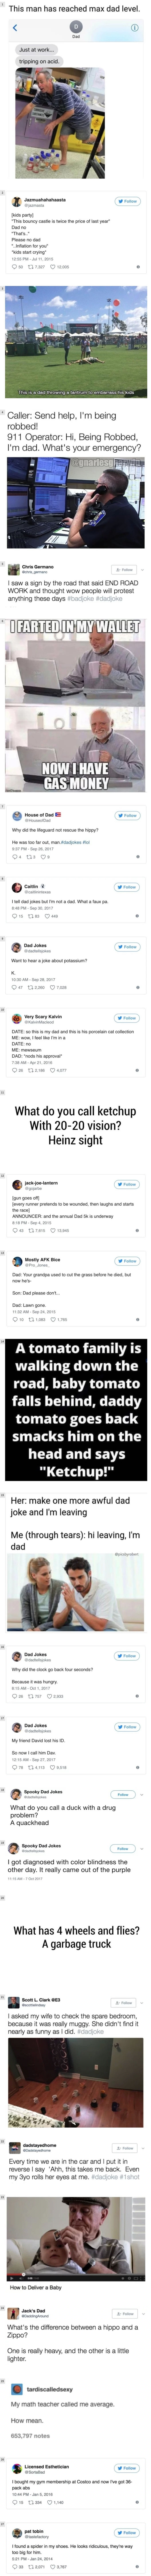 Dad jokes that'll make you laugh or cringe